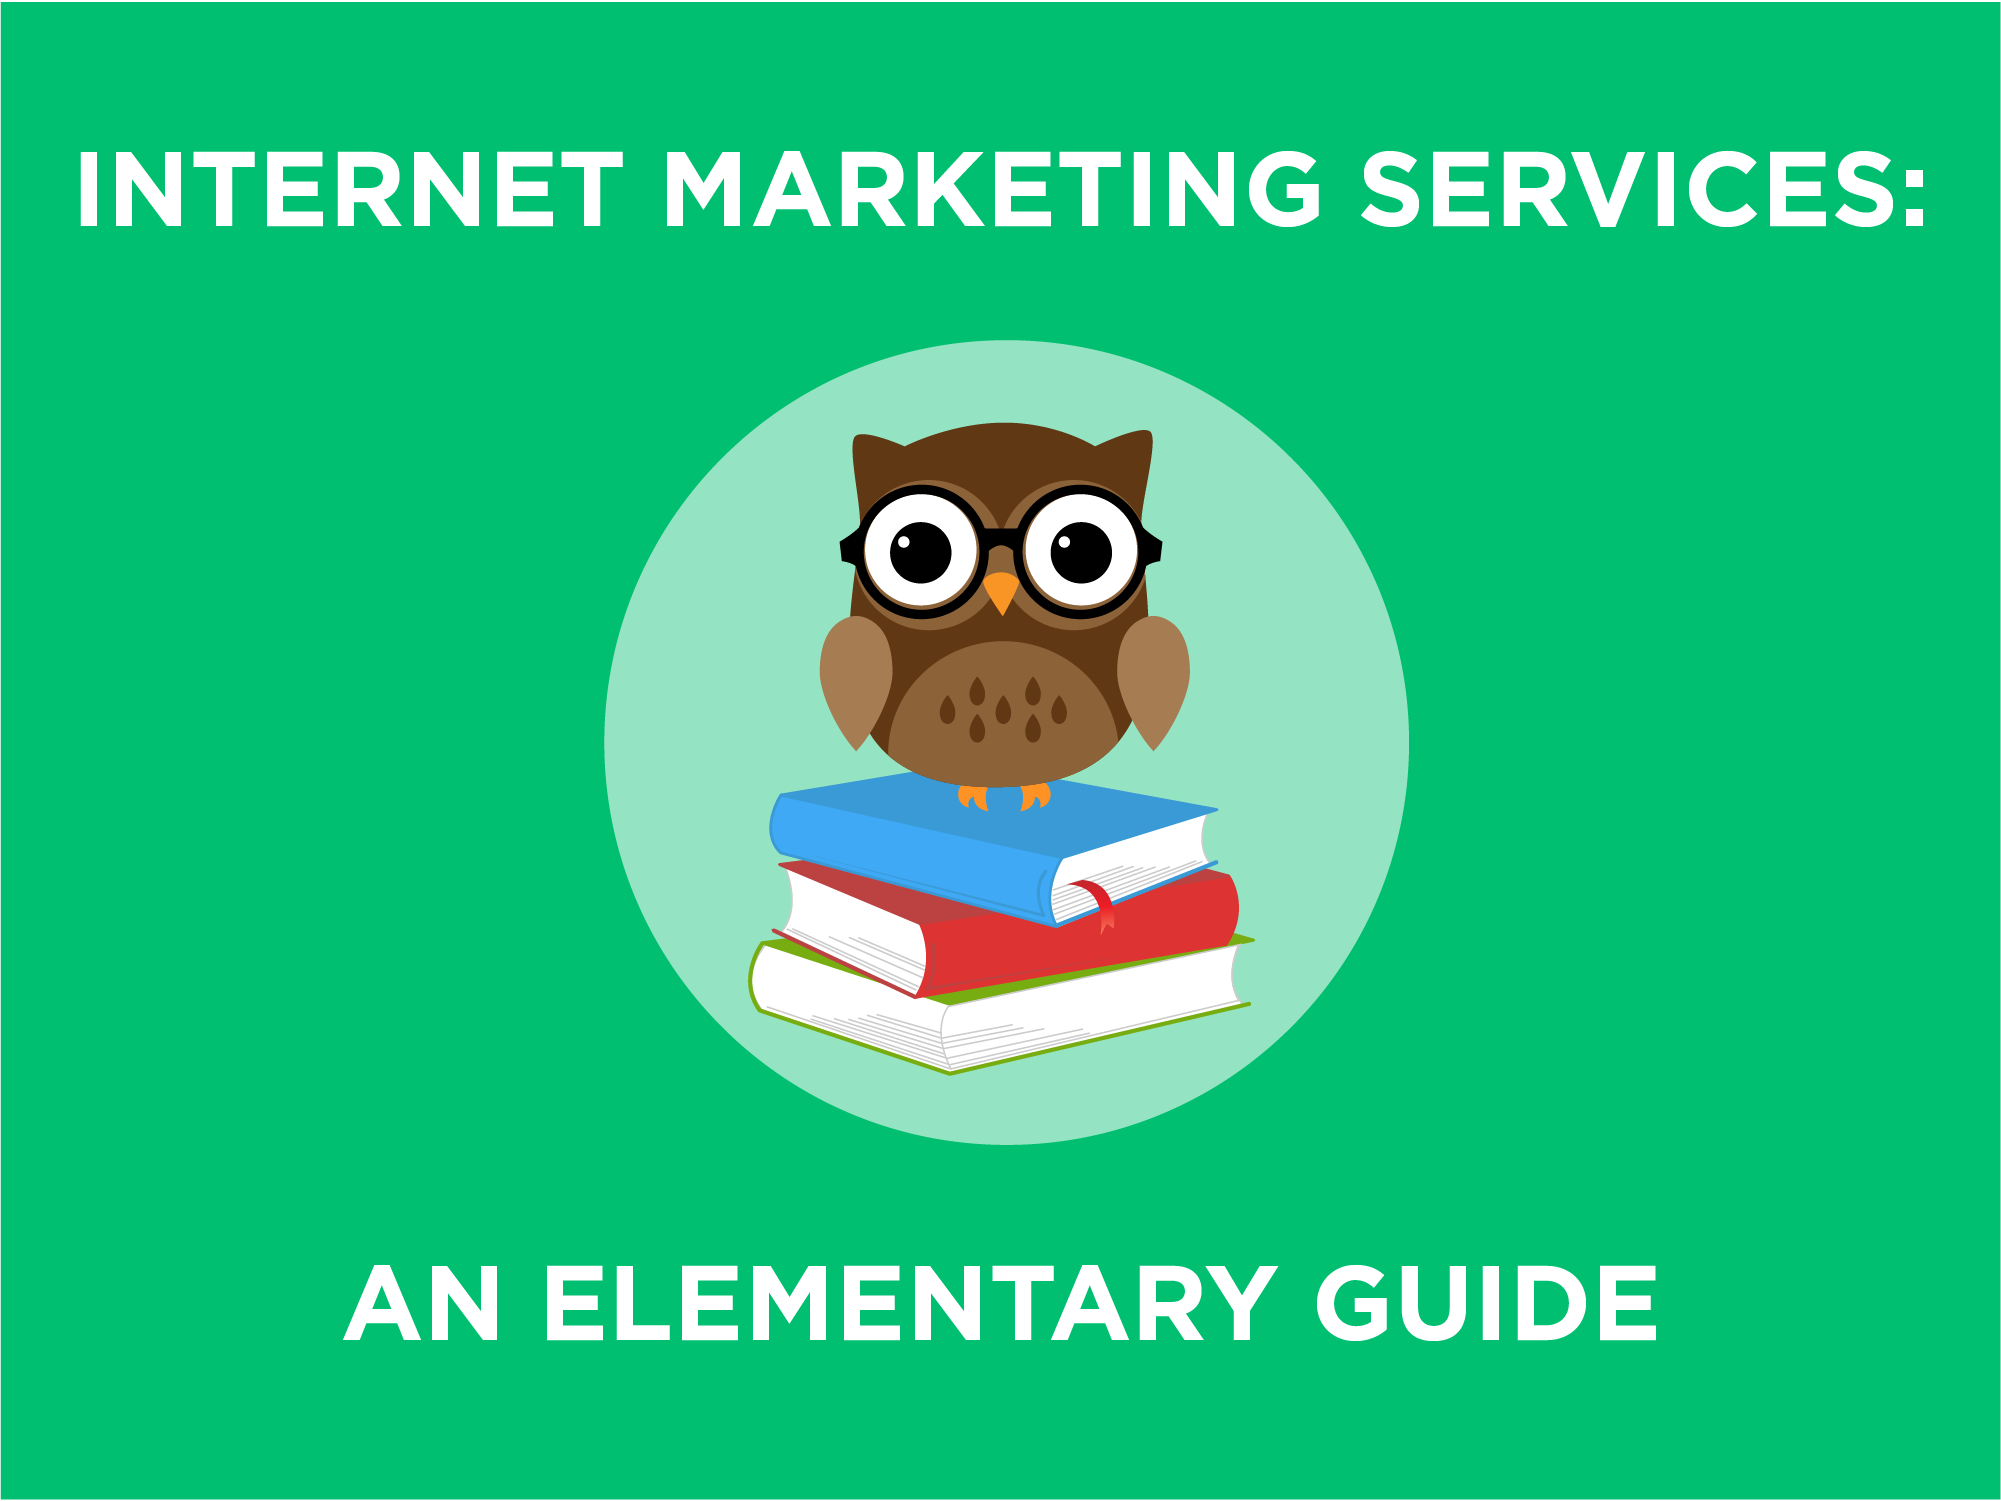 Internet Marketing Services - An Elementary Guide